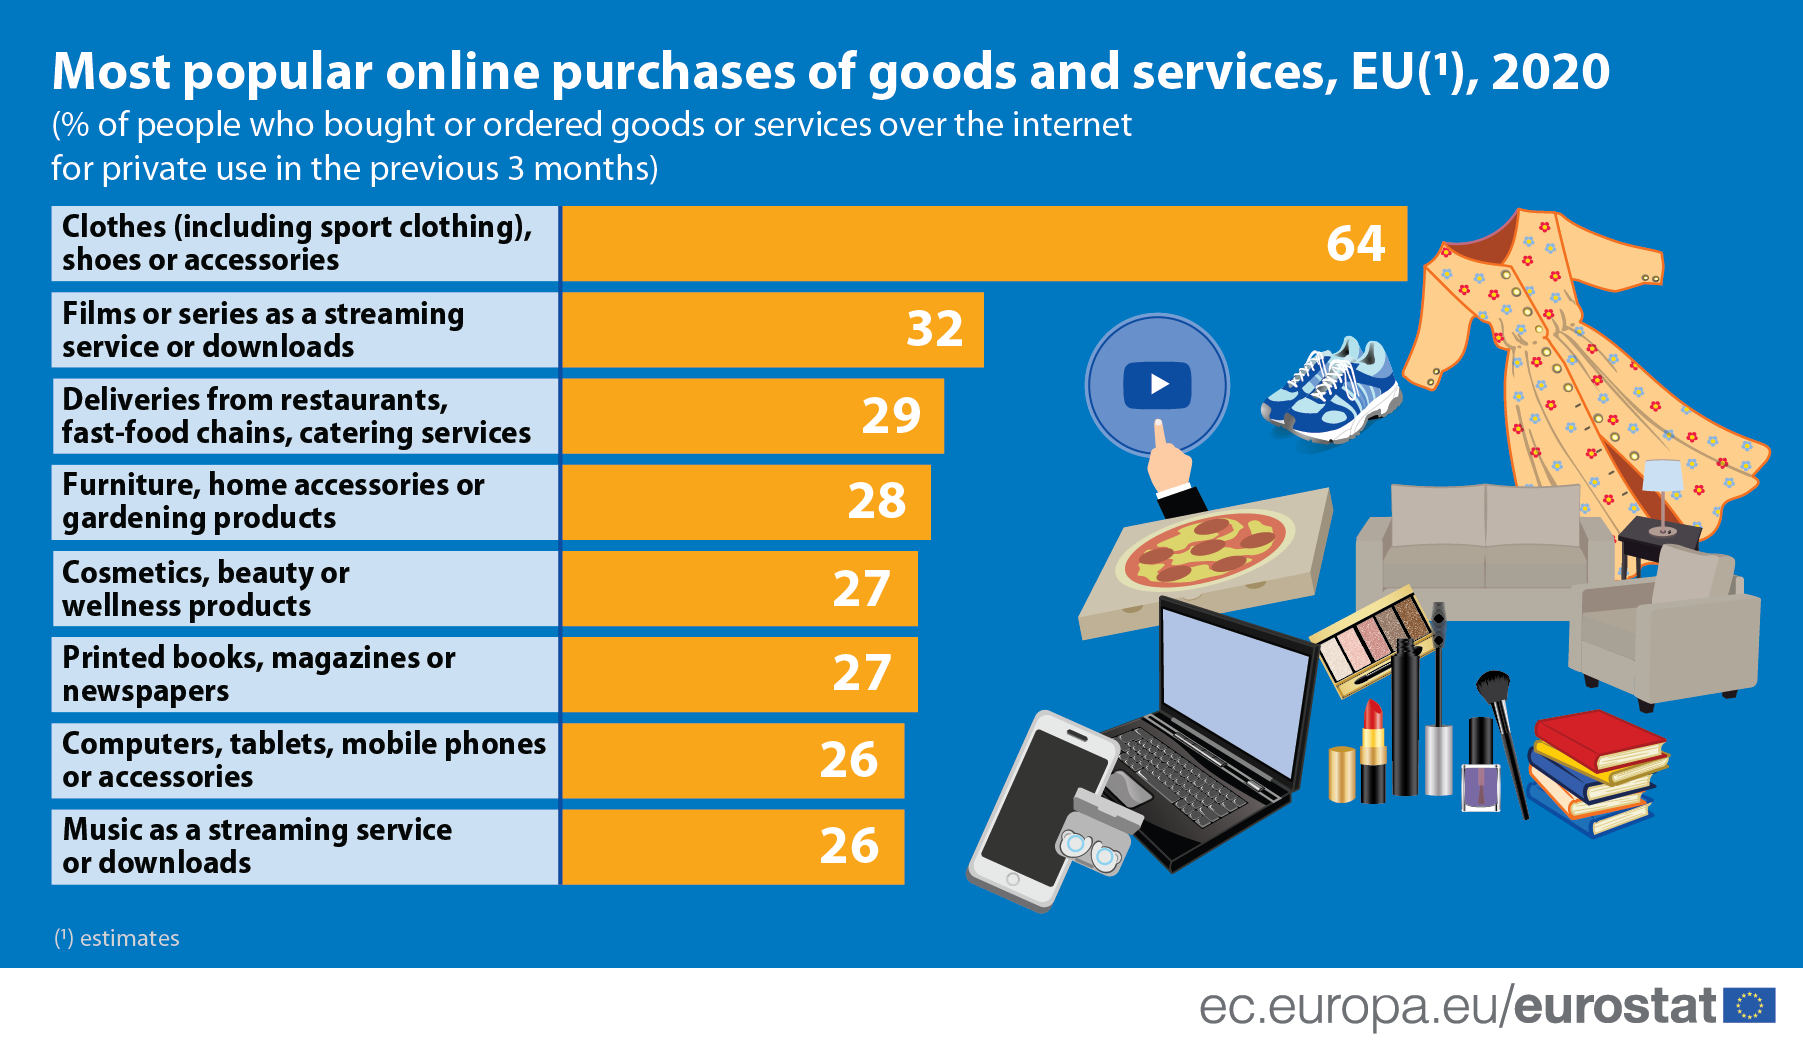 Most popular online purchases